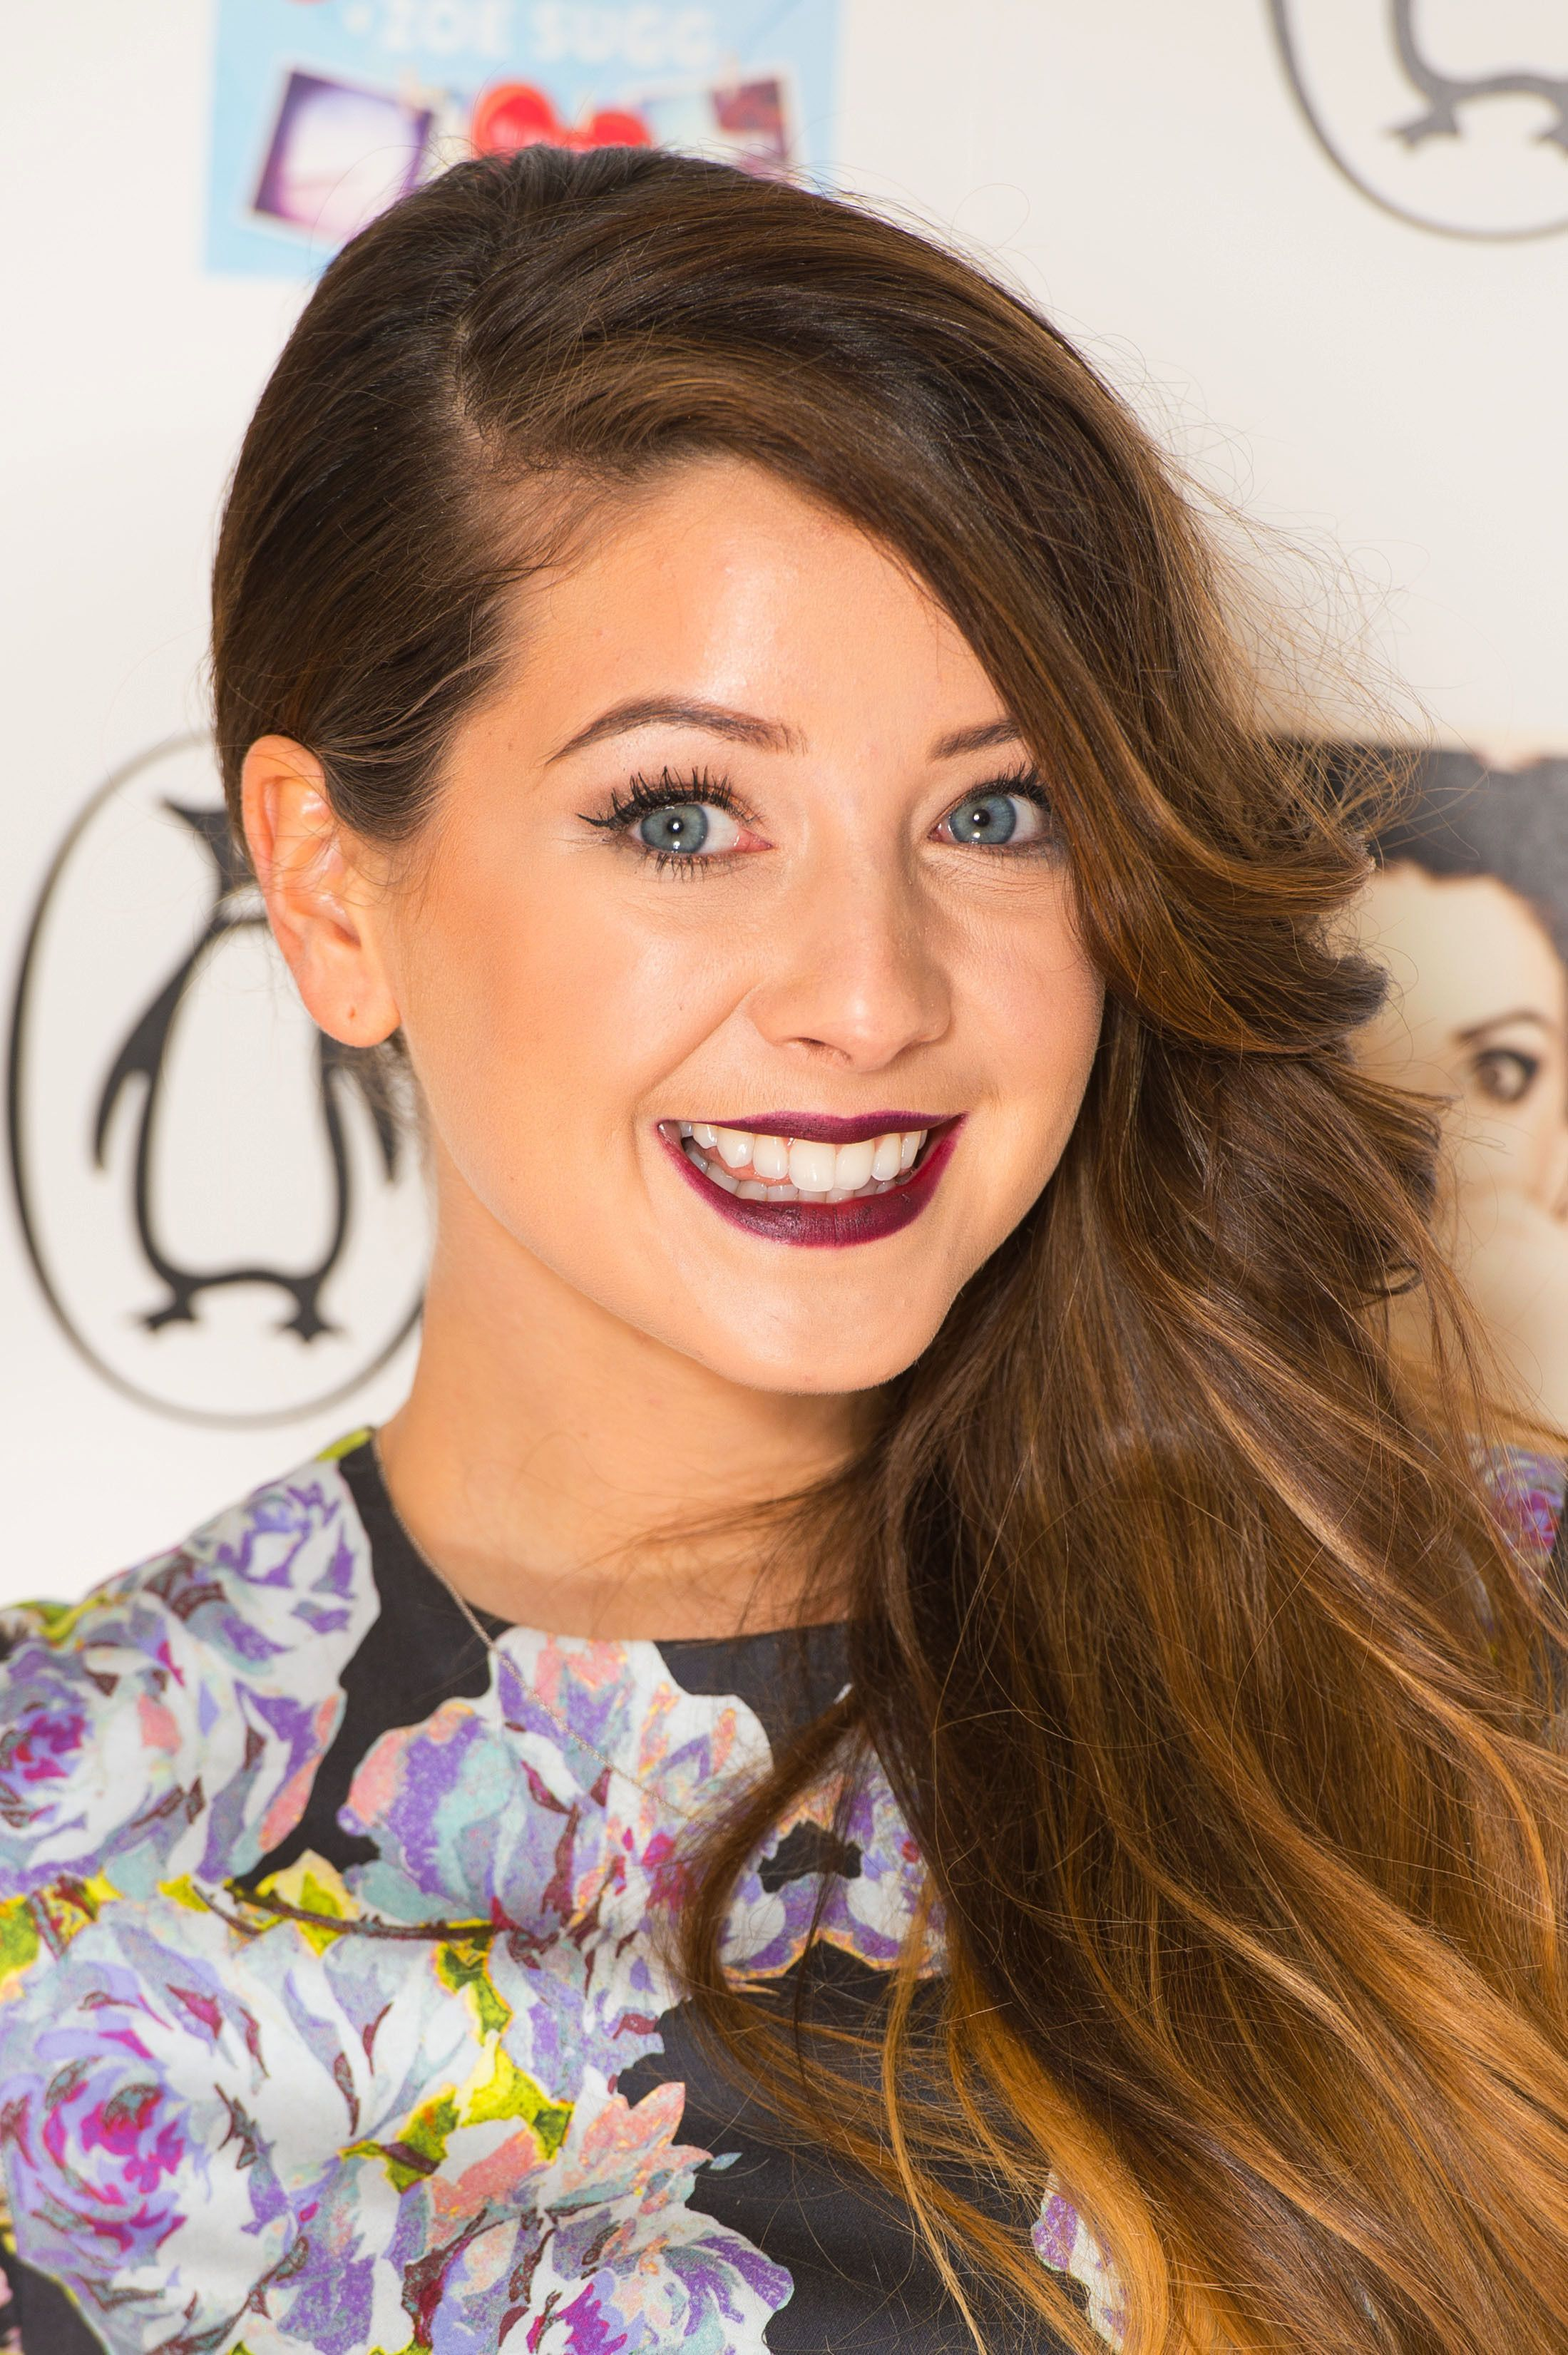 YouTube Star Zoella Faces Calls To Apologise After 'Homophobic' And Fat-Shaming Tweets Are